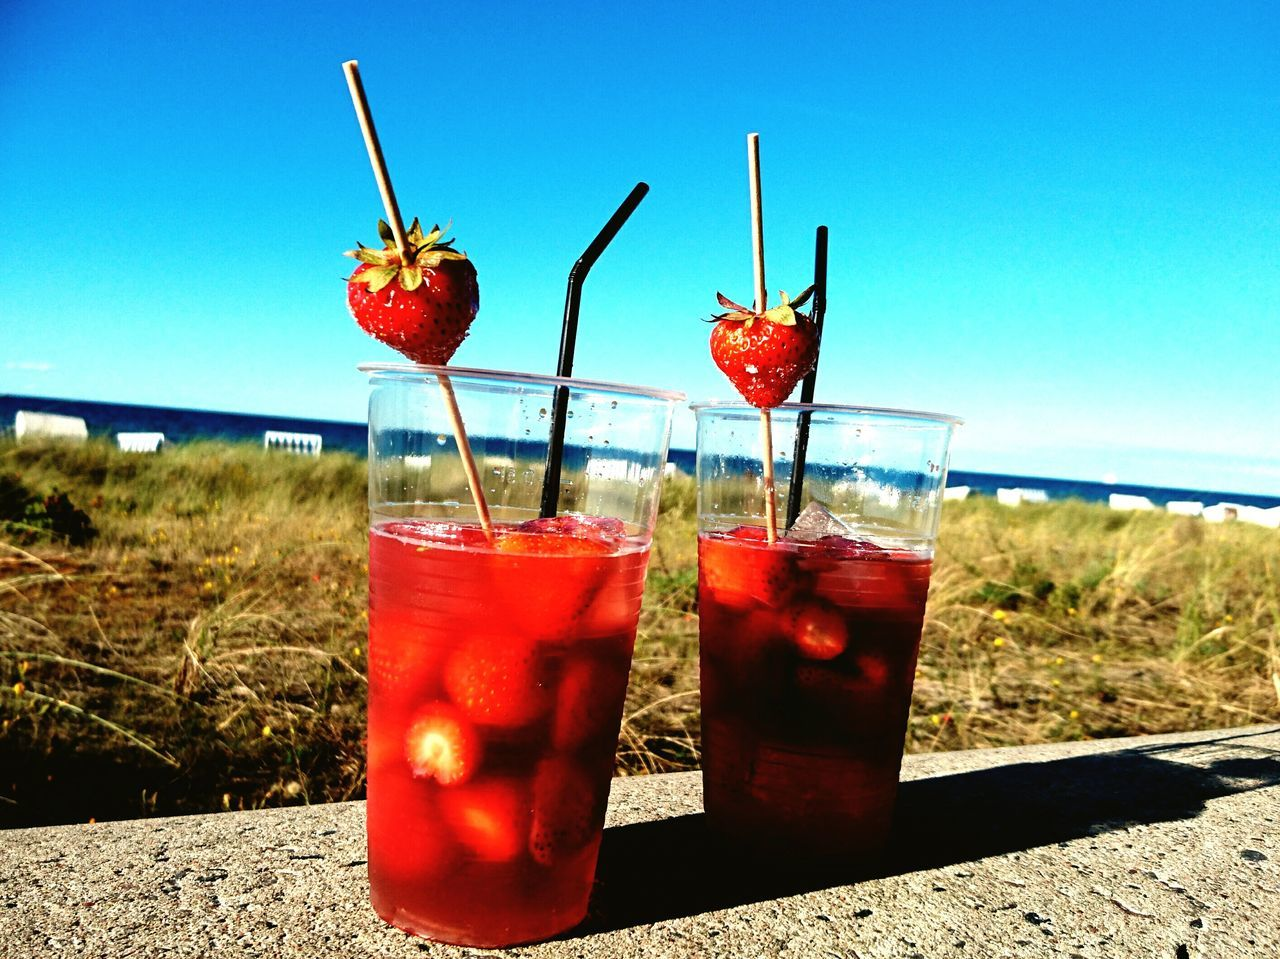 Cocktail Drink Holiday Beachtime Strawberry Togheter Ostseebad Kühlungsborn Wine Moments Strandspaziergang Beachlife Beach Day Strand ♥ Ostseeküste Beachview Ostseestrand Beach Photography Beach Beach Time Sea